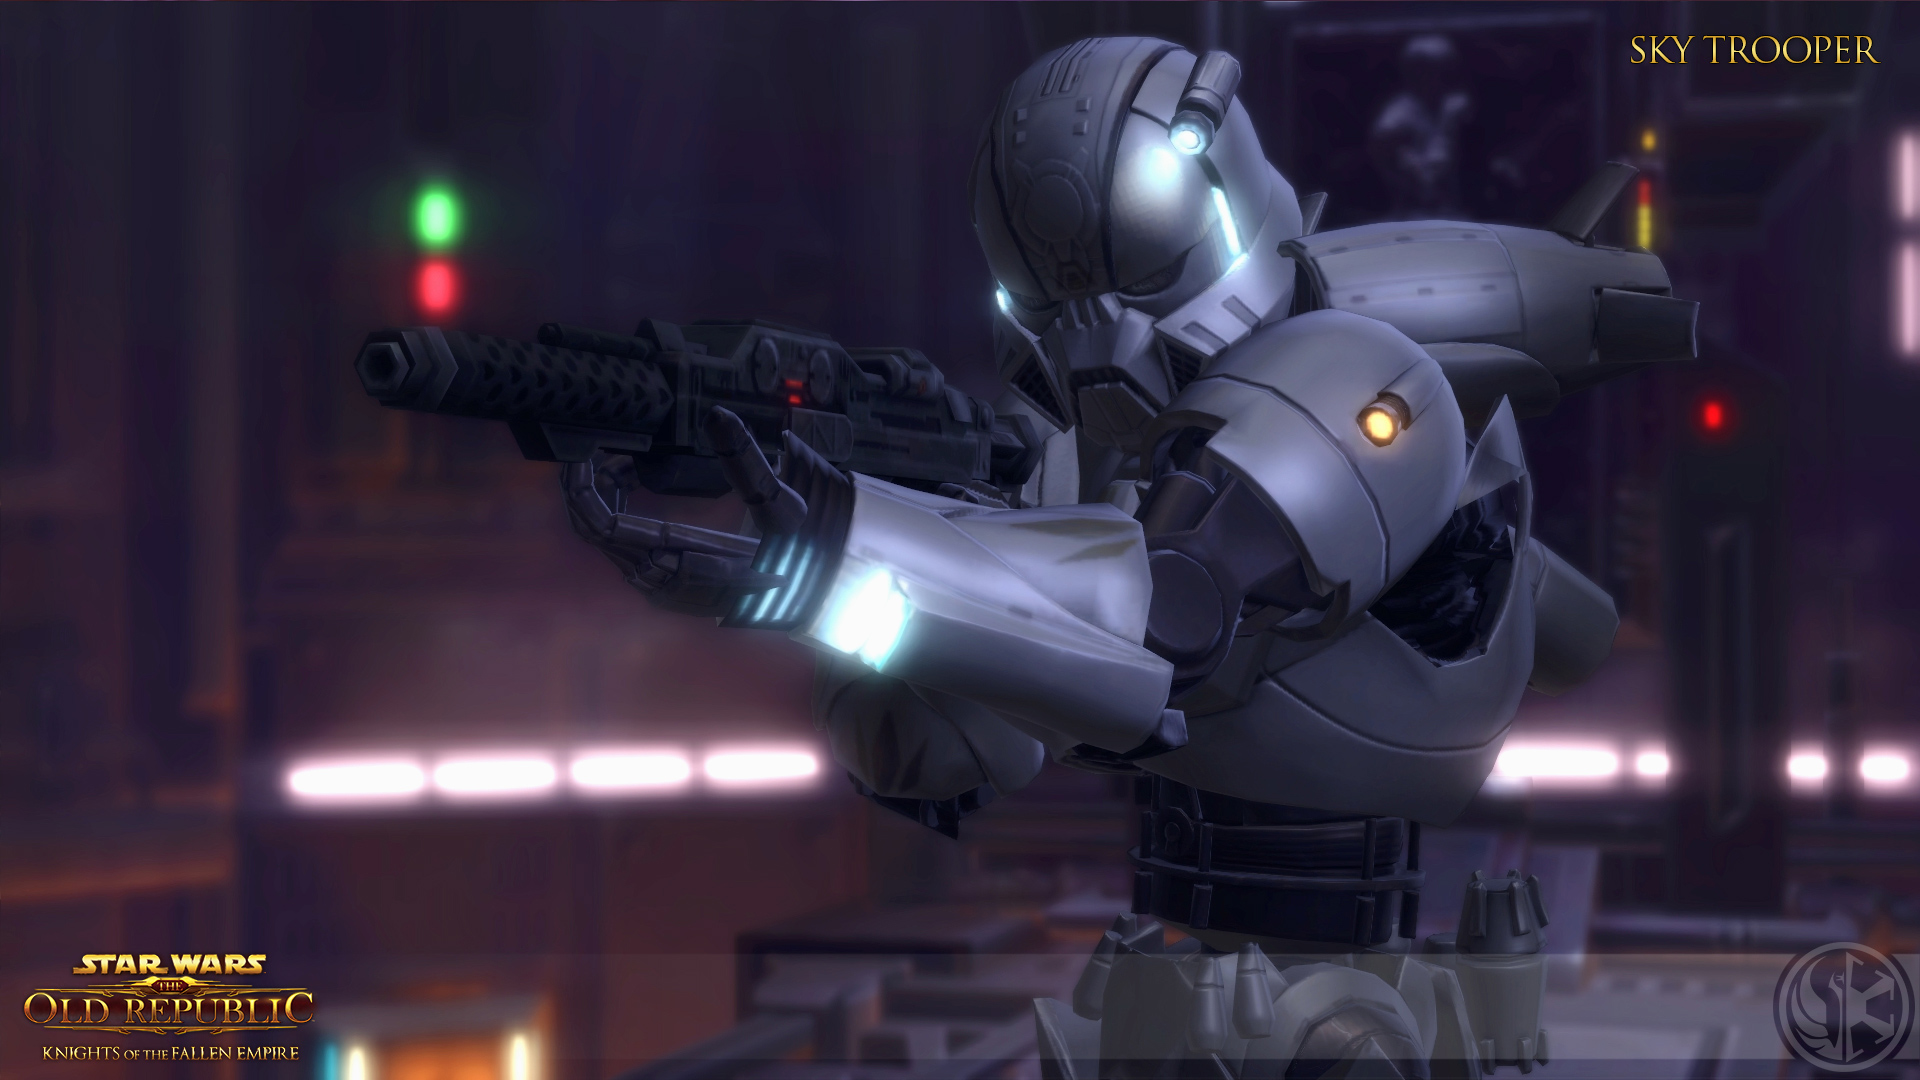 Star Wars The Old Republic Knights Of The Fallen Empire Announcement Trailer